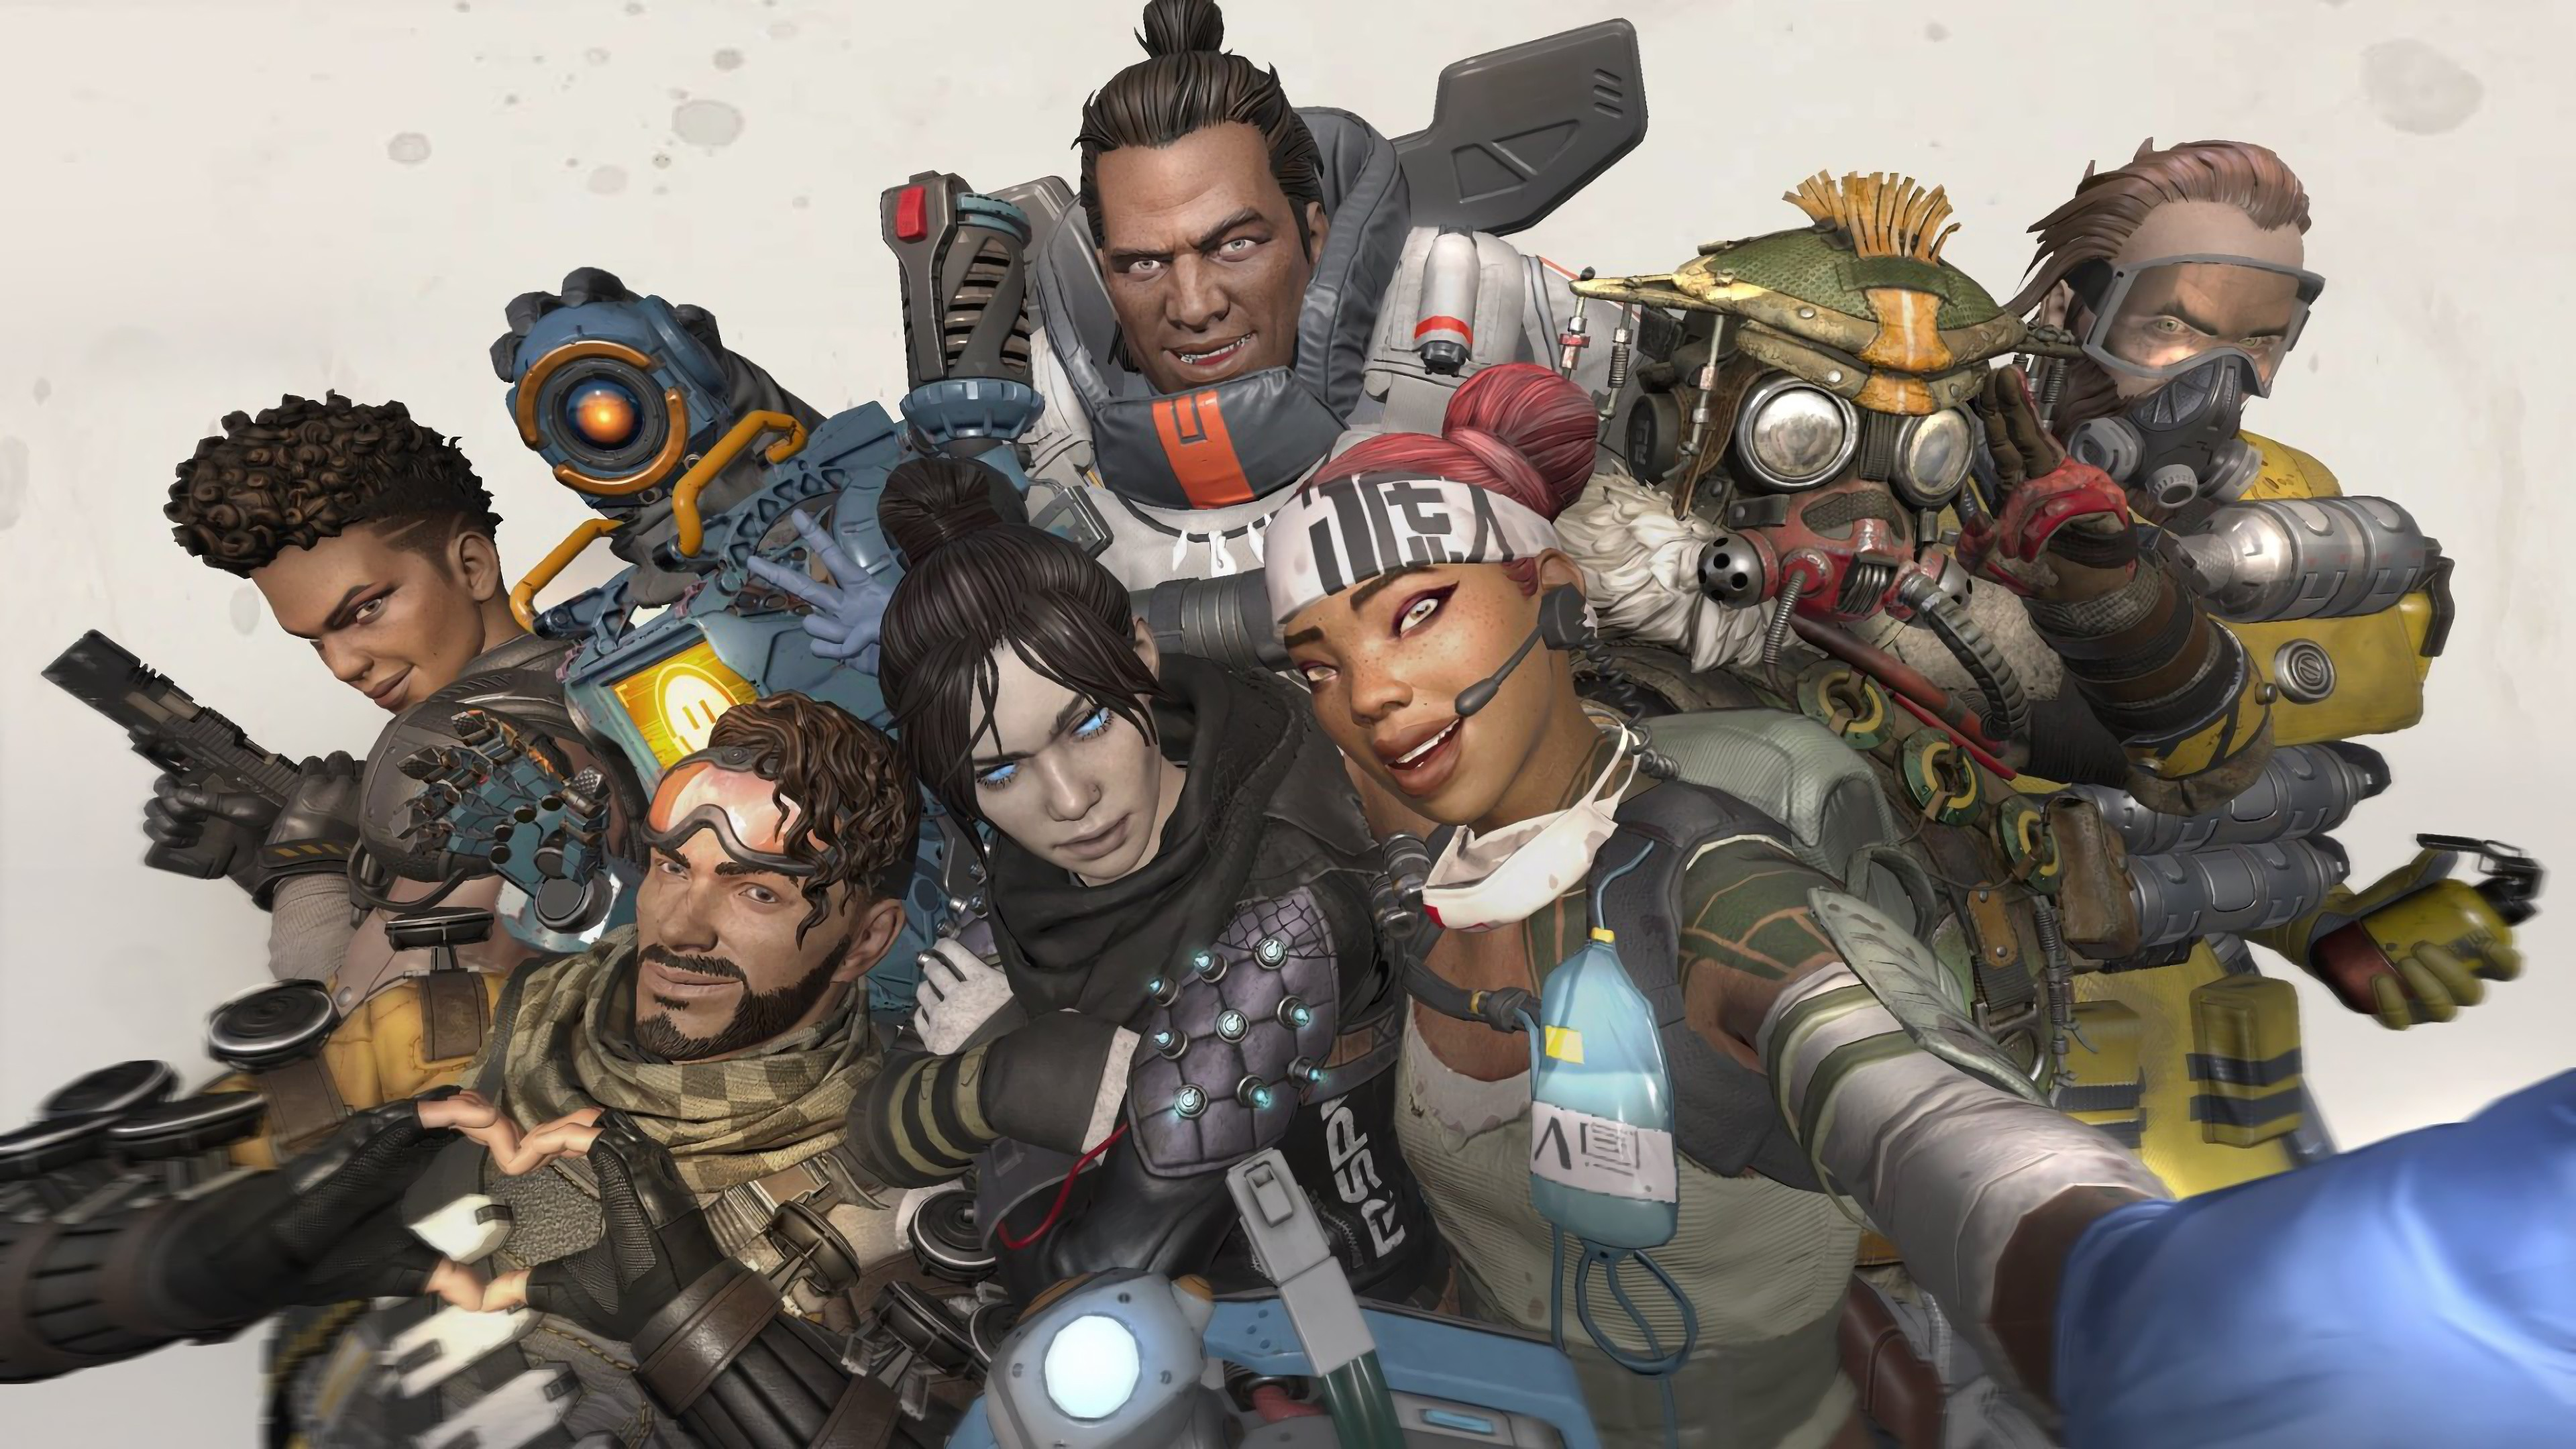 apex legends characters 4K 7 - Apex Legends Characters Selfie 4k 2019 - Apex wallpaper 4k 2019, Apex phone wallpaper hd 4k, Apex legends wallpaper phone, Apex legends wallpaper hd 4kwallpaper, apex legends characters wallpaper hd 4k, Apex legends background hd 4k wallpaper, Apex Legends 4k wallpaper